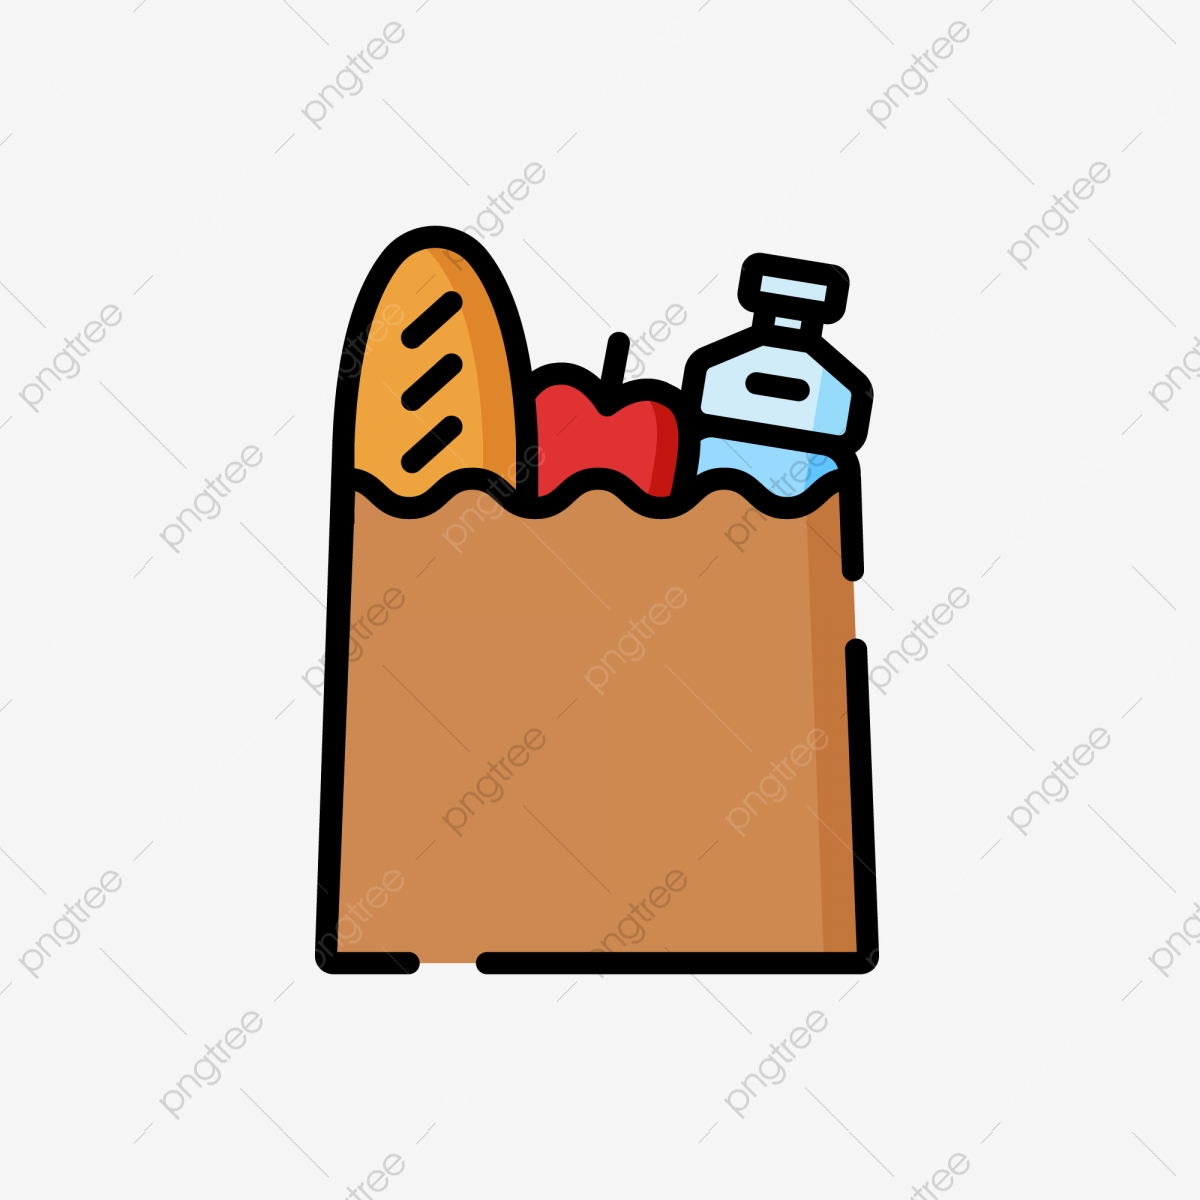 Bag Paper Bag Bread Apple Mineral Water Shopping Bag Icon Png And Vector With Transparent Background For Free Download